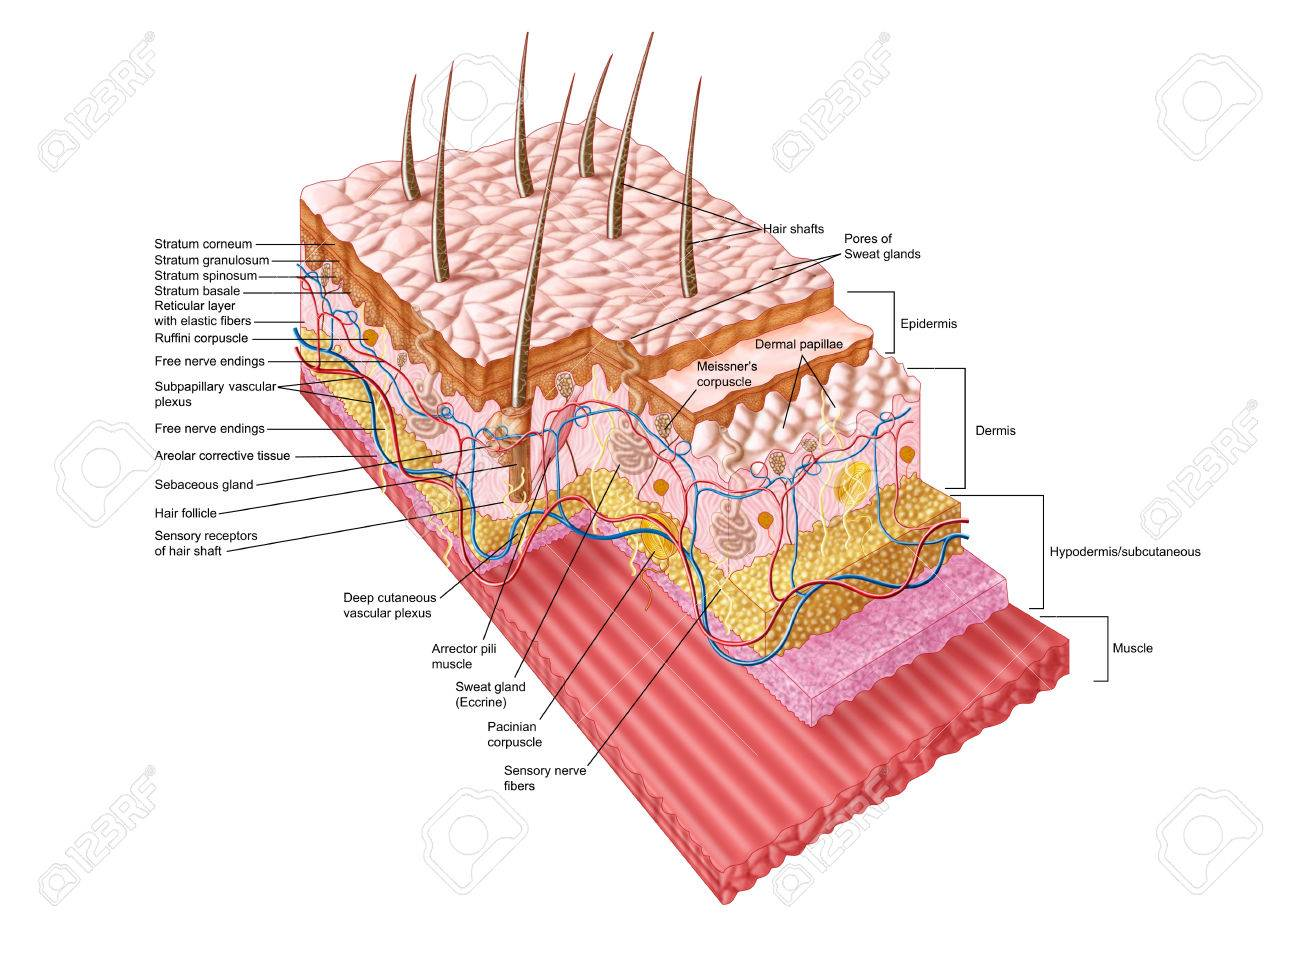 Anatomy Of The Human Skin. Stock Photo, Picture And Royalty Free ...